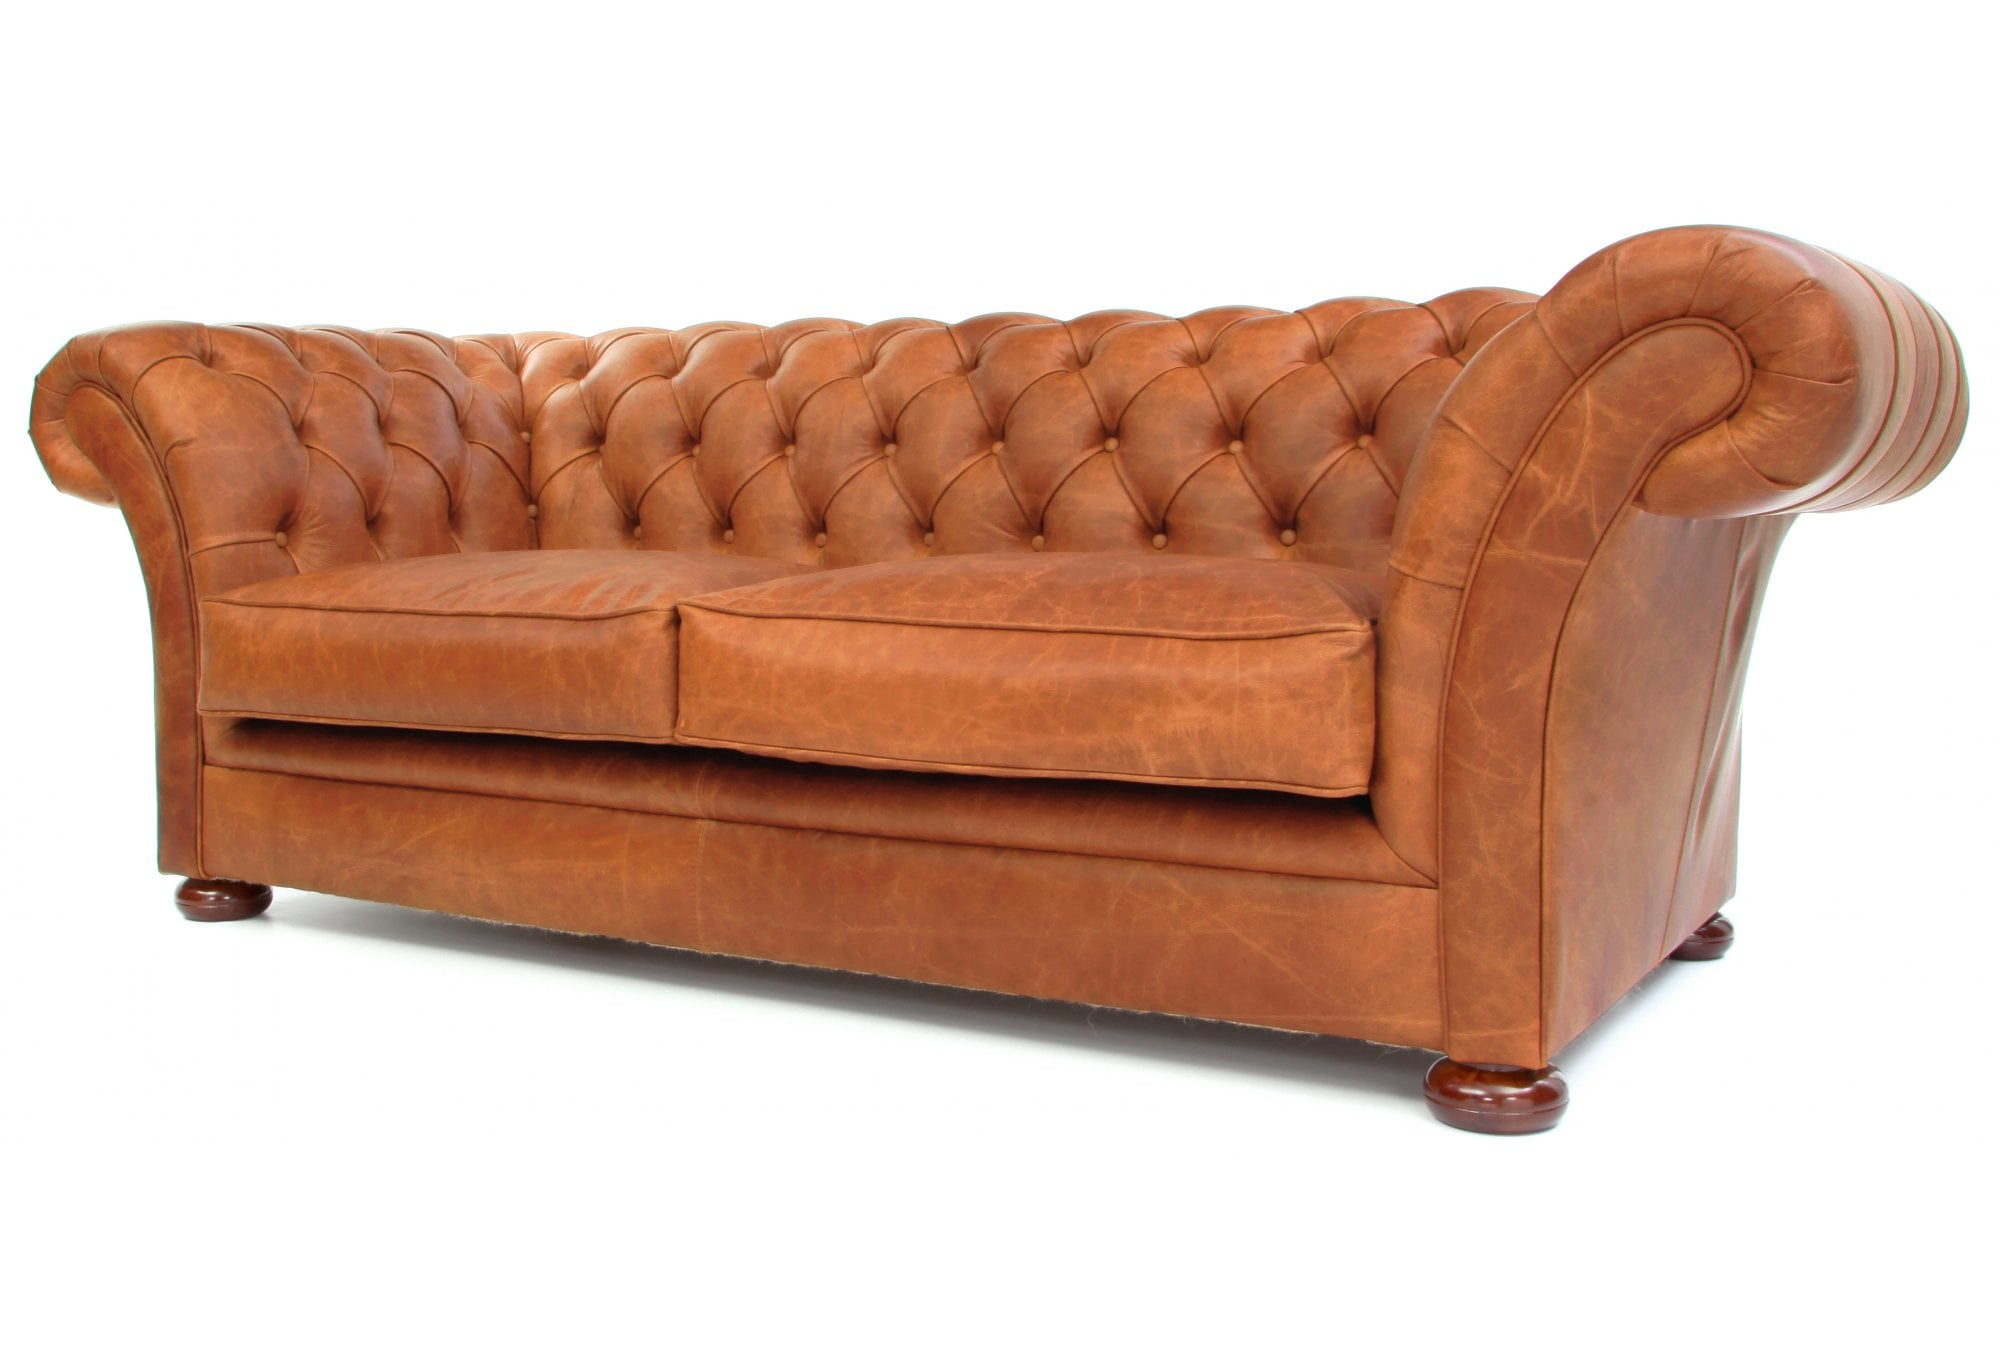 The Scholar 3 Seater Vintage Leather Chesterfield Sofa from Old Boot